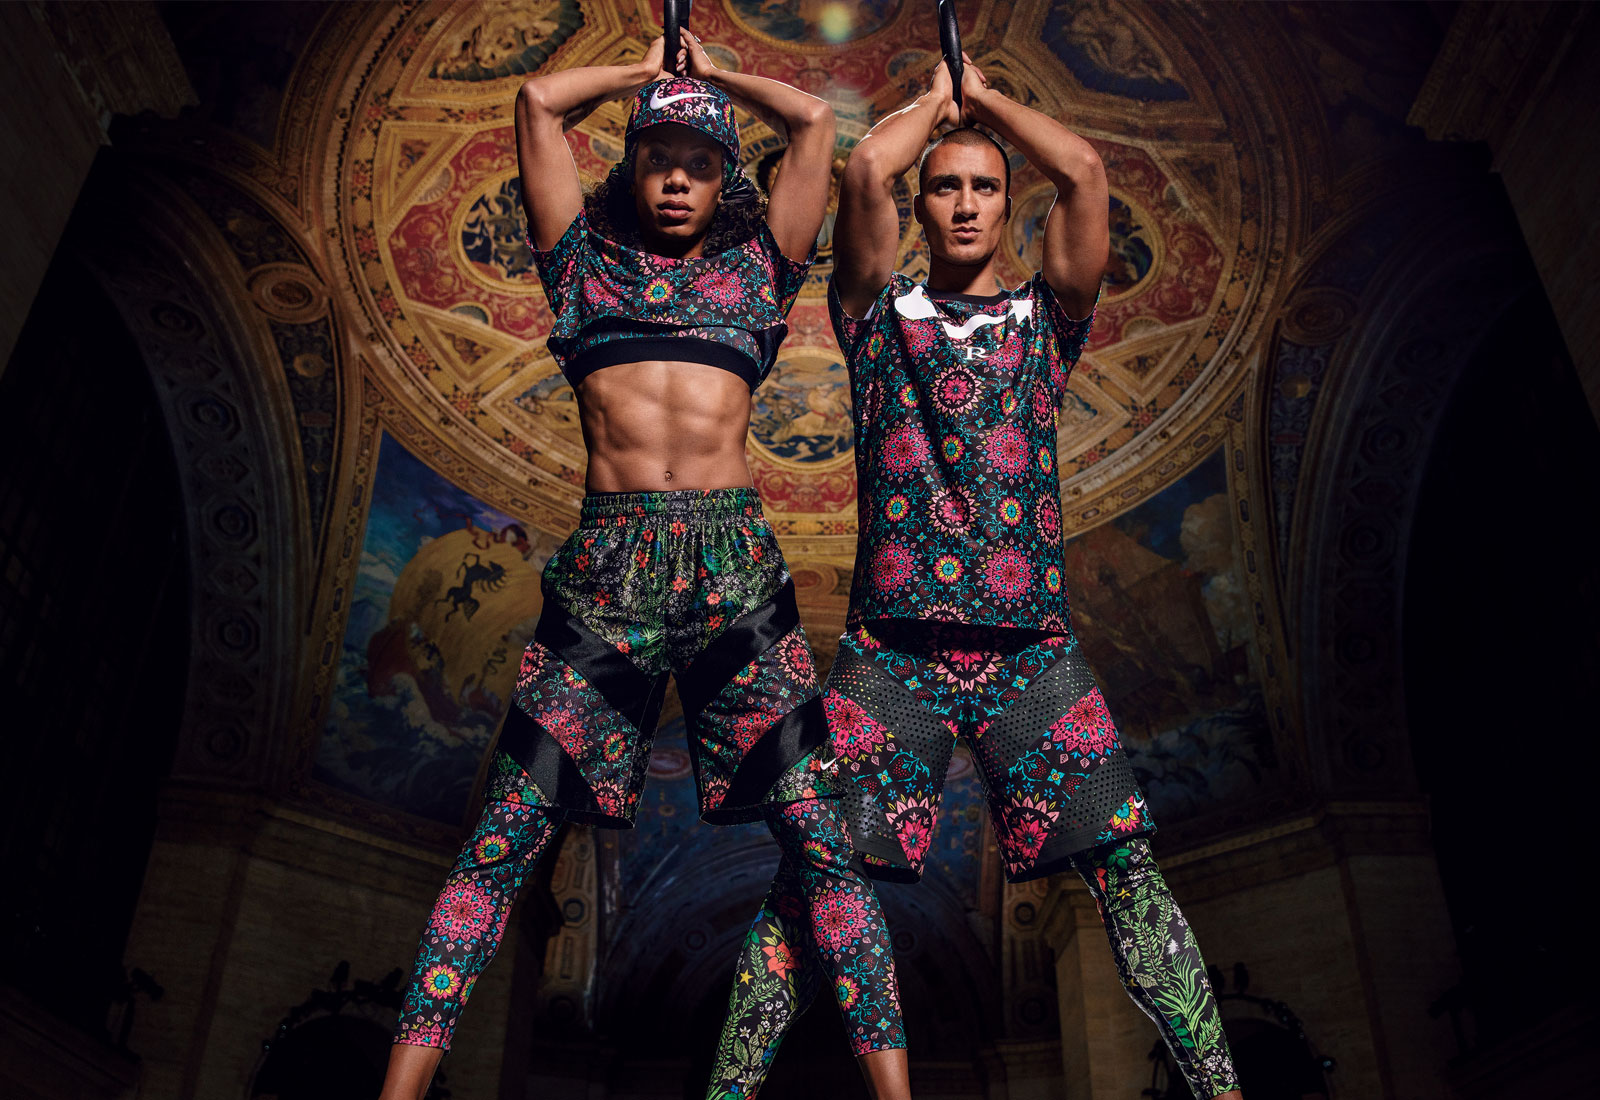 givenchy riccardo tisci nikelab collaboration sportswear collection 1600 x 1100